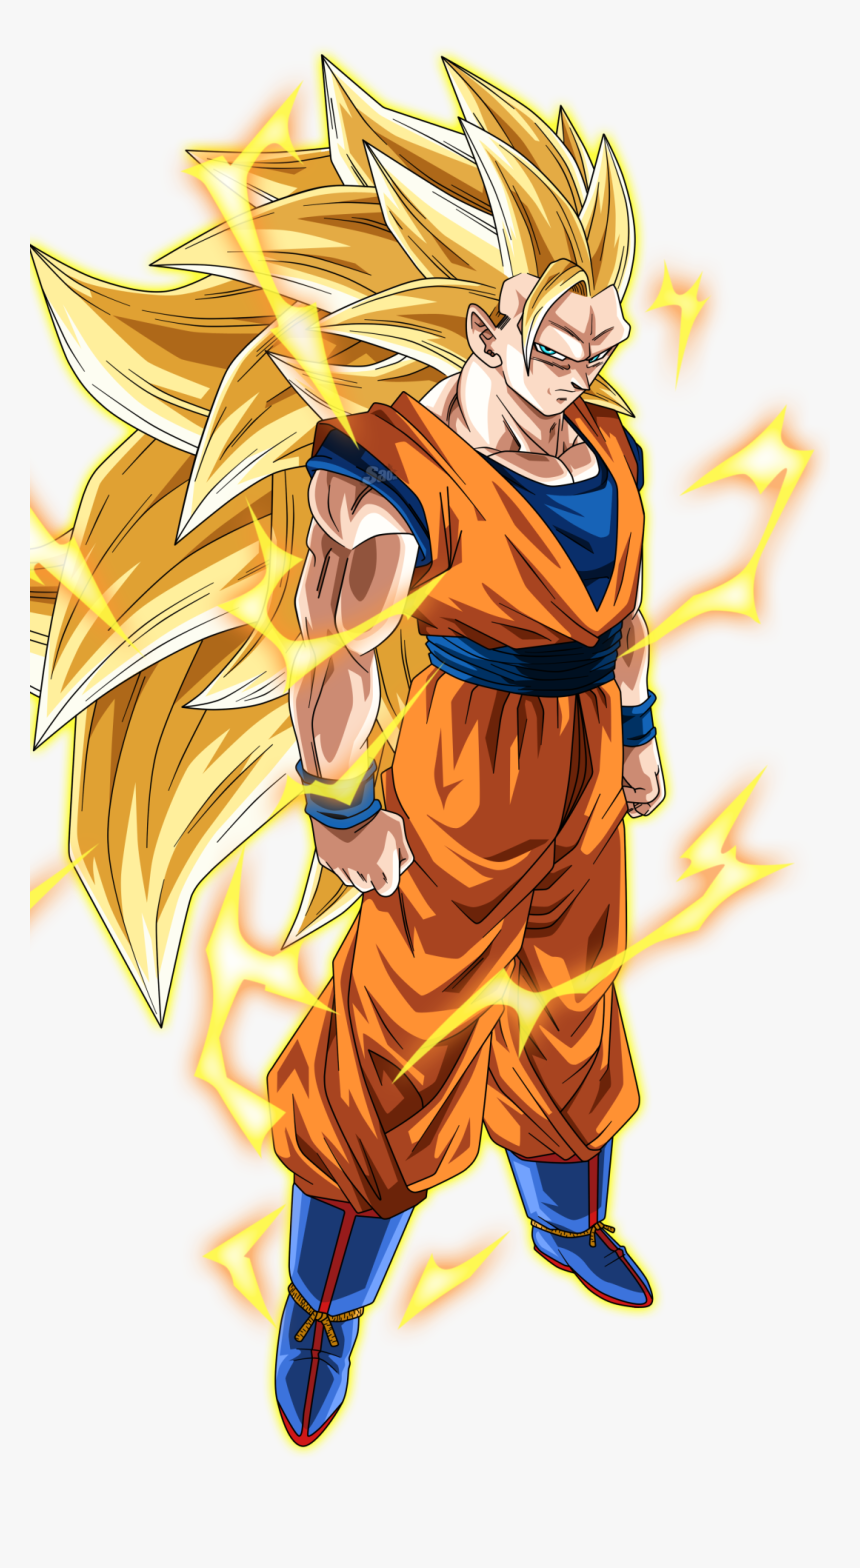 Wallpaper Super Saiyan 3 Angel Goku Hd Png Download Kindpng